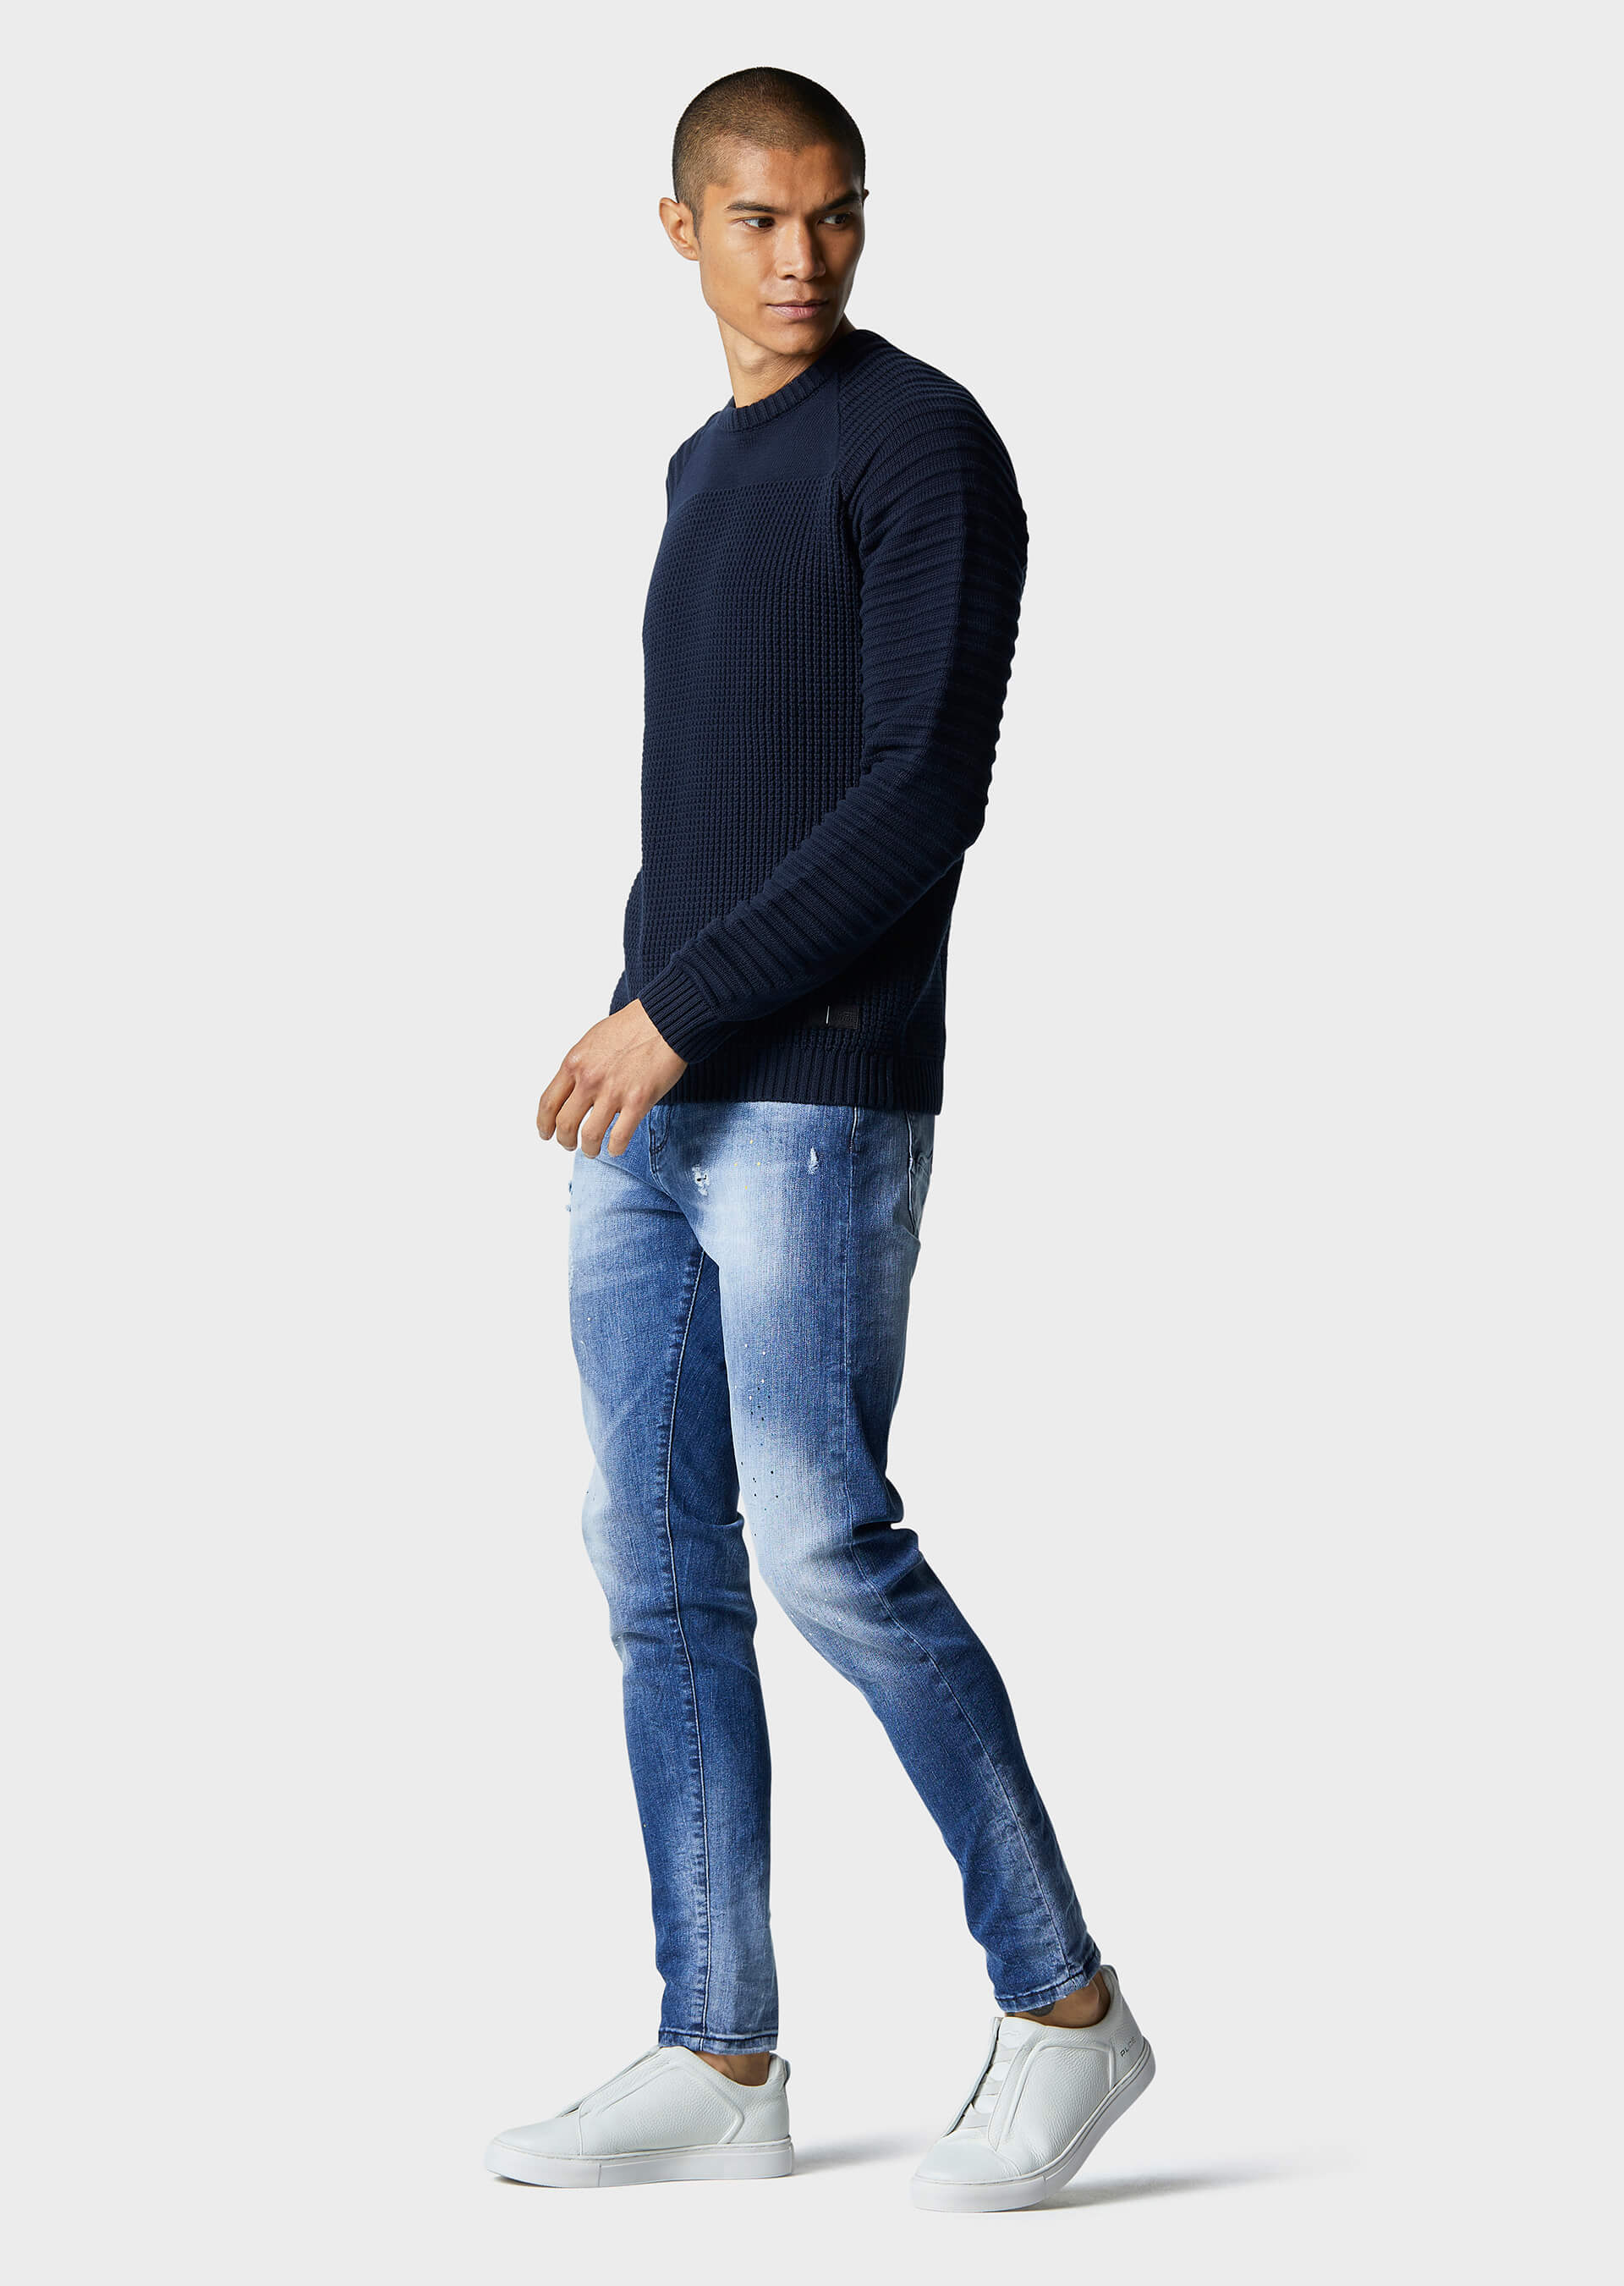 Cradle Navy Knitwear second_image